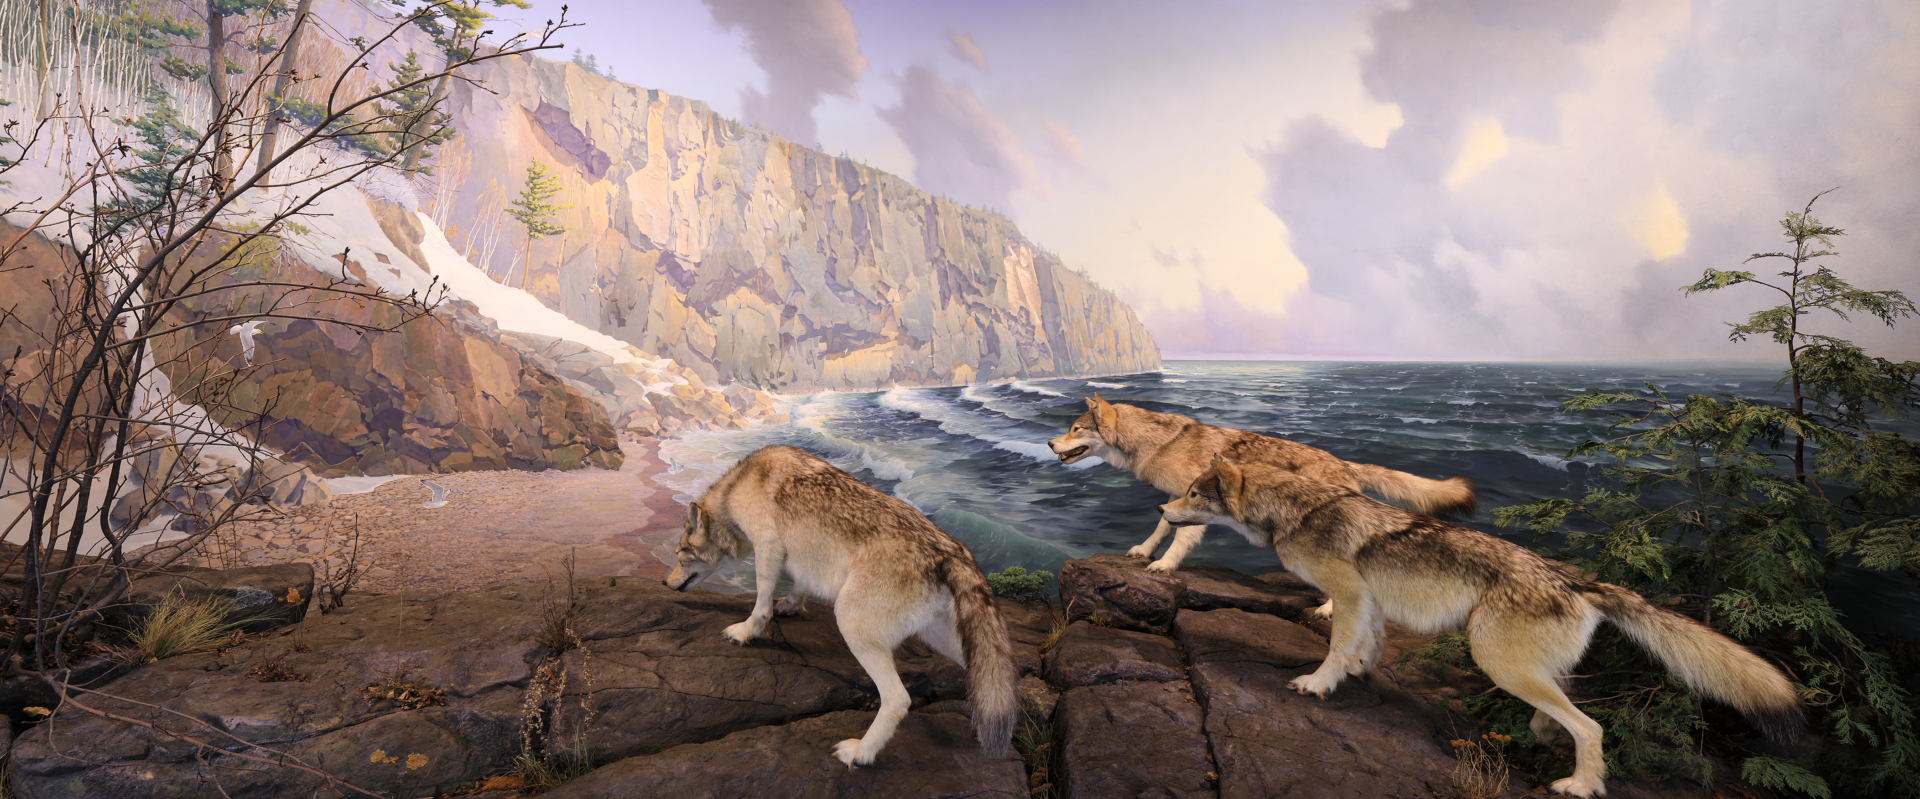 a pack of 3 wolves hunting a deer on the shore of lake superior